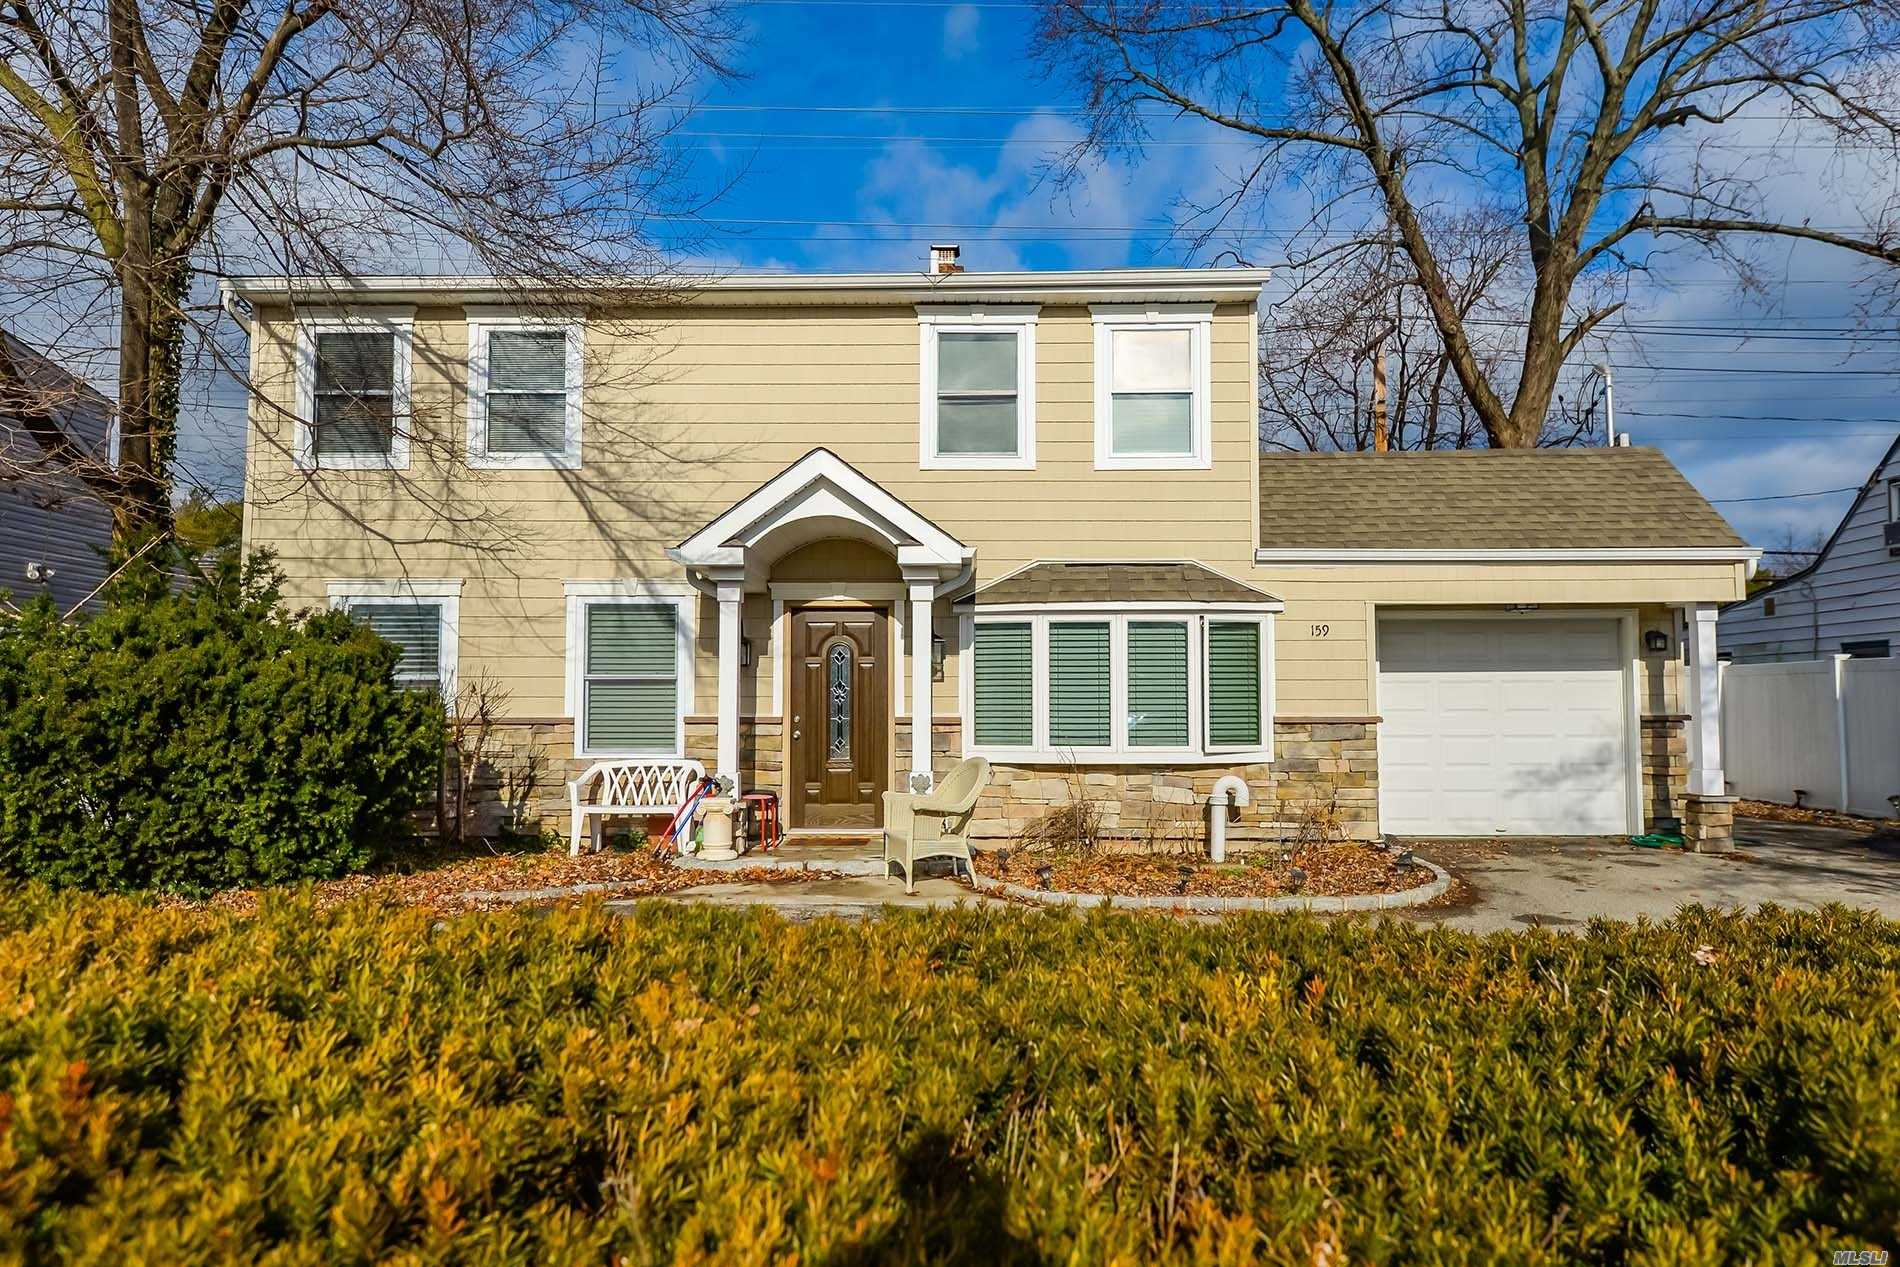 Beautiful All Renovated Colonial , New Windows, New Granite Counter Tops, Eat In Kitchen, Stainless Steel Appliances, Updated Heating System, New Above Ground Oil Tank , Main Floor Brand New Full Bath, Second Floor Beautiful Jacuzzi Marble Full Bath , Large Bedrooms Huge Deck On The 2nd Floor, Over Sized Yard, 1 Car Garage, Could Be Mother And Daughter With Proper Permits.